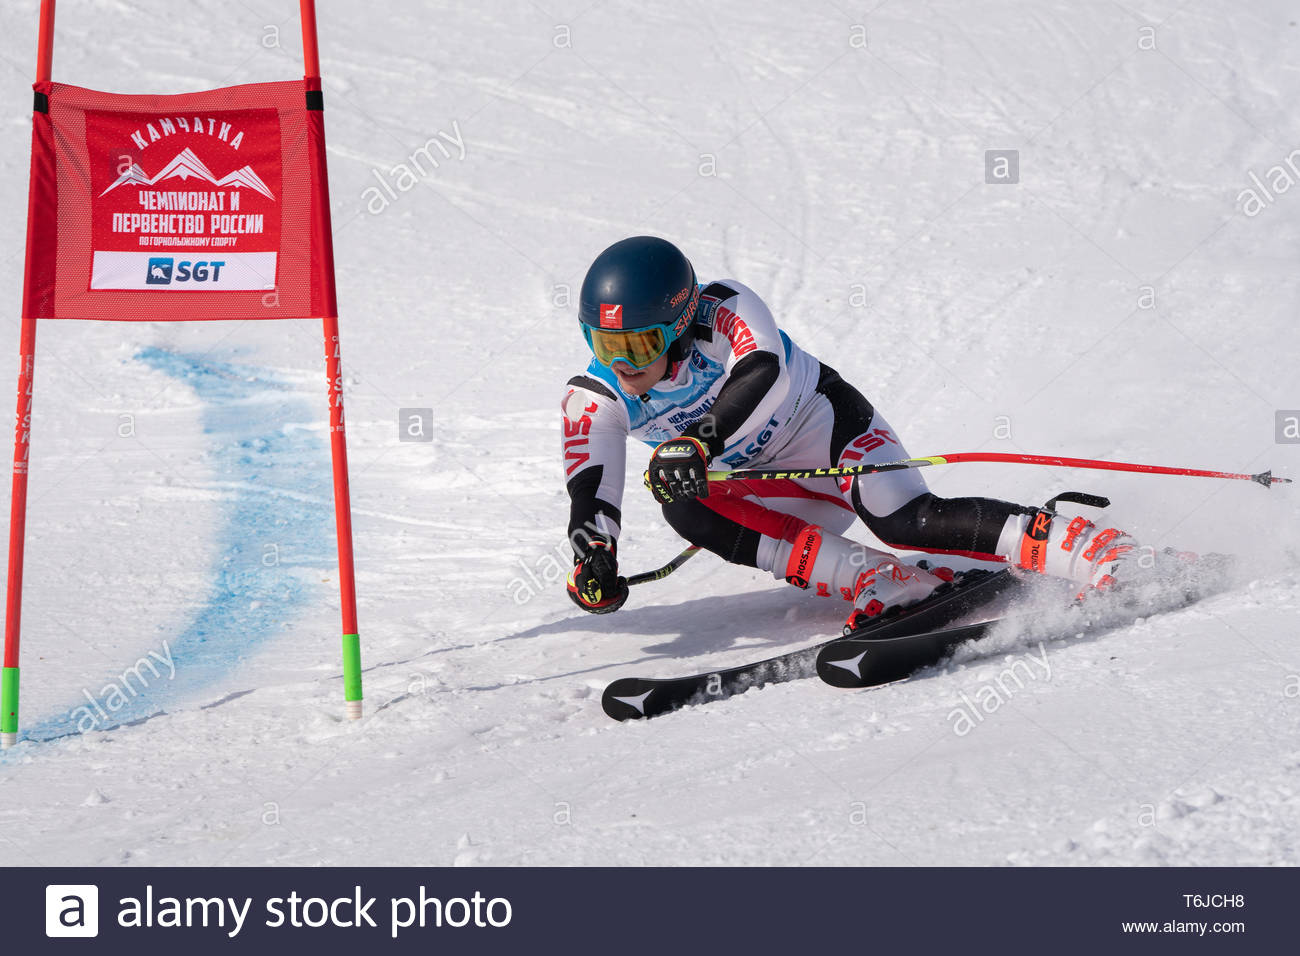 KAMCHATKA PENINSULA, RUSSIA - APR 1, 2019: Russian Alpine Skiing Cup, International Ski Federation (FIS) Championship, giant slalom. Mount skier Egor  - Stock Image